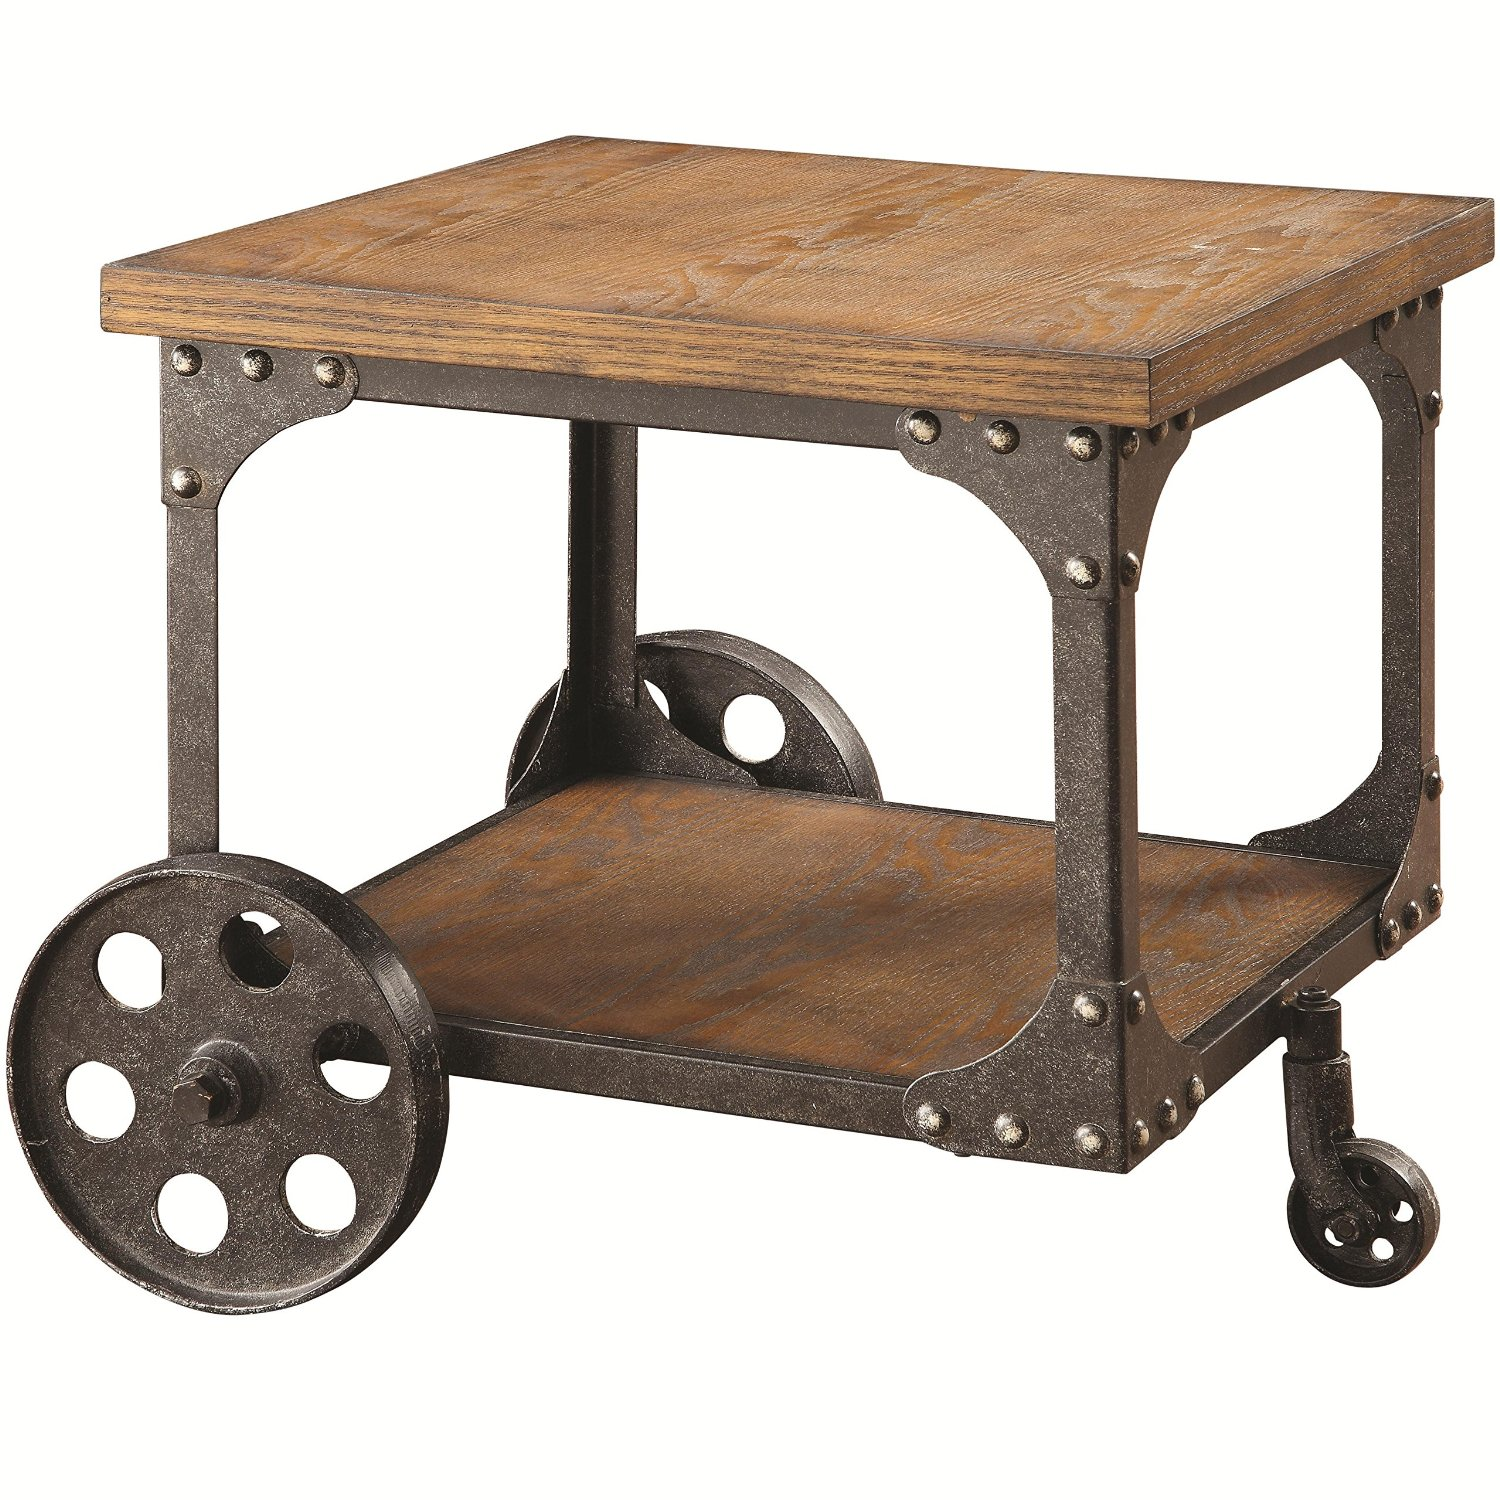 Total fab modern industrial warehouse railroad cart for Coffee tables on wheels